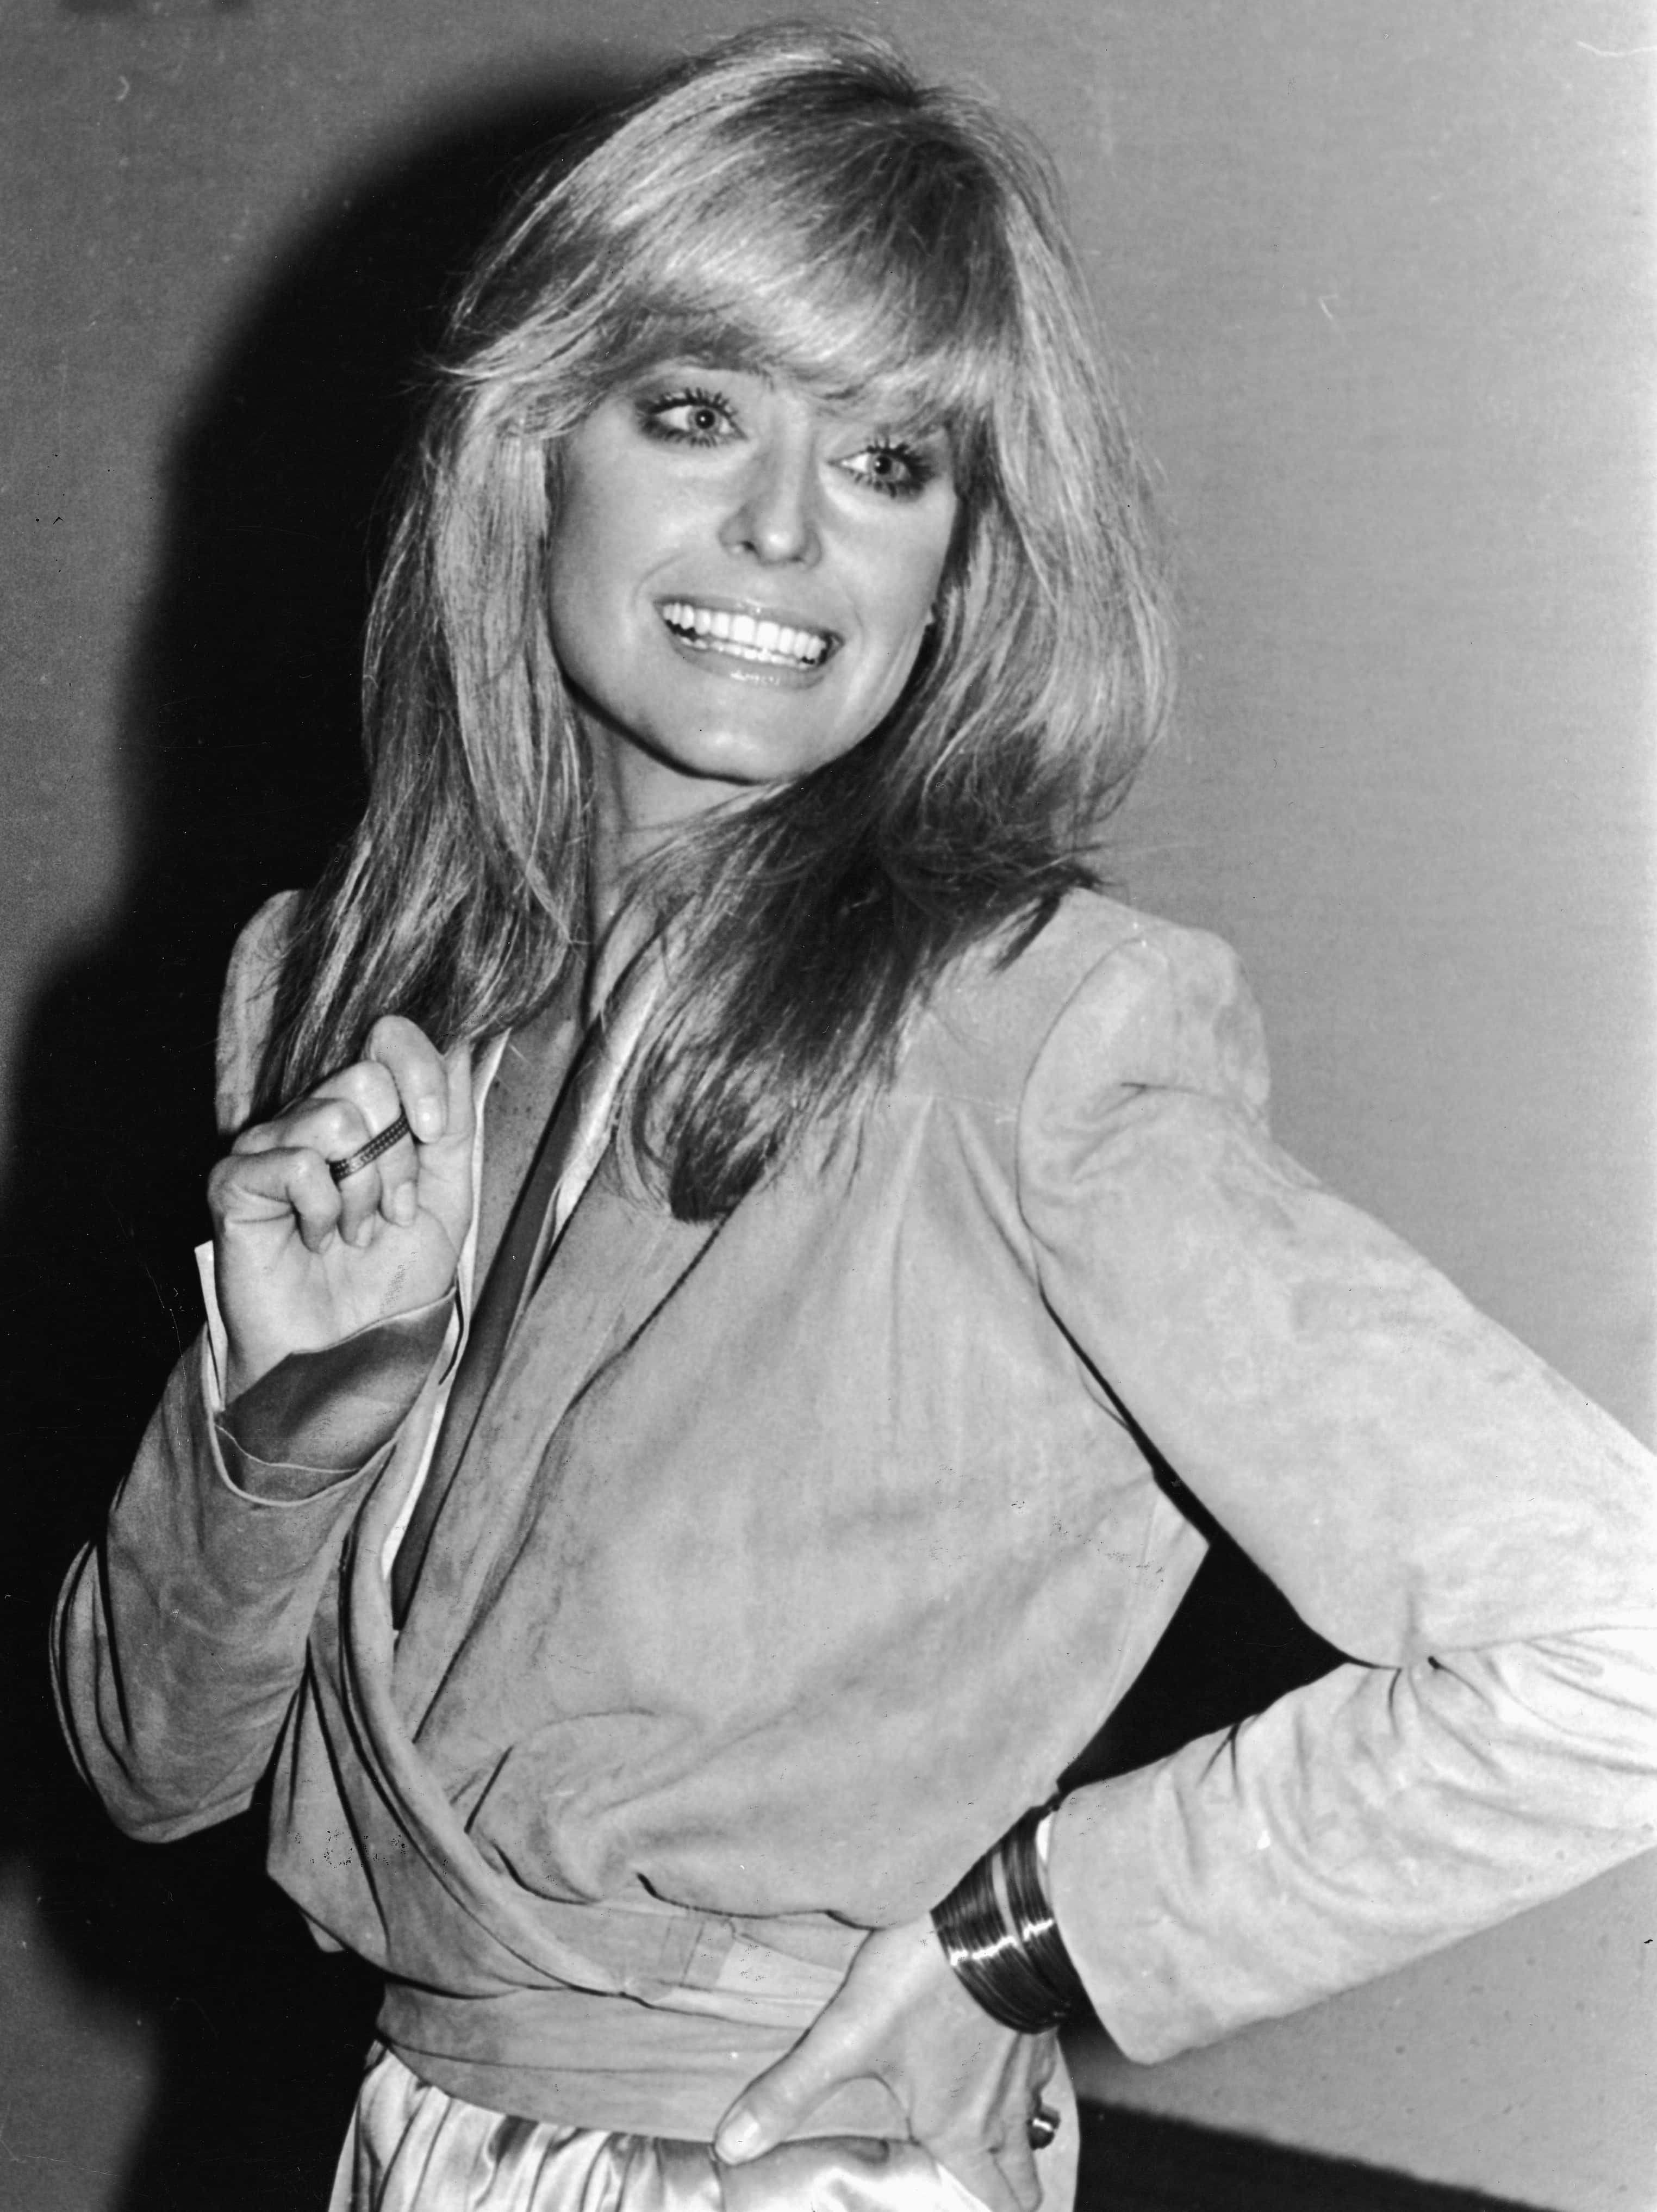 Farrah Fawcett Forever: How blonde bombshell created the poster that broke several taboos and ...